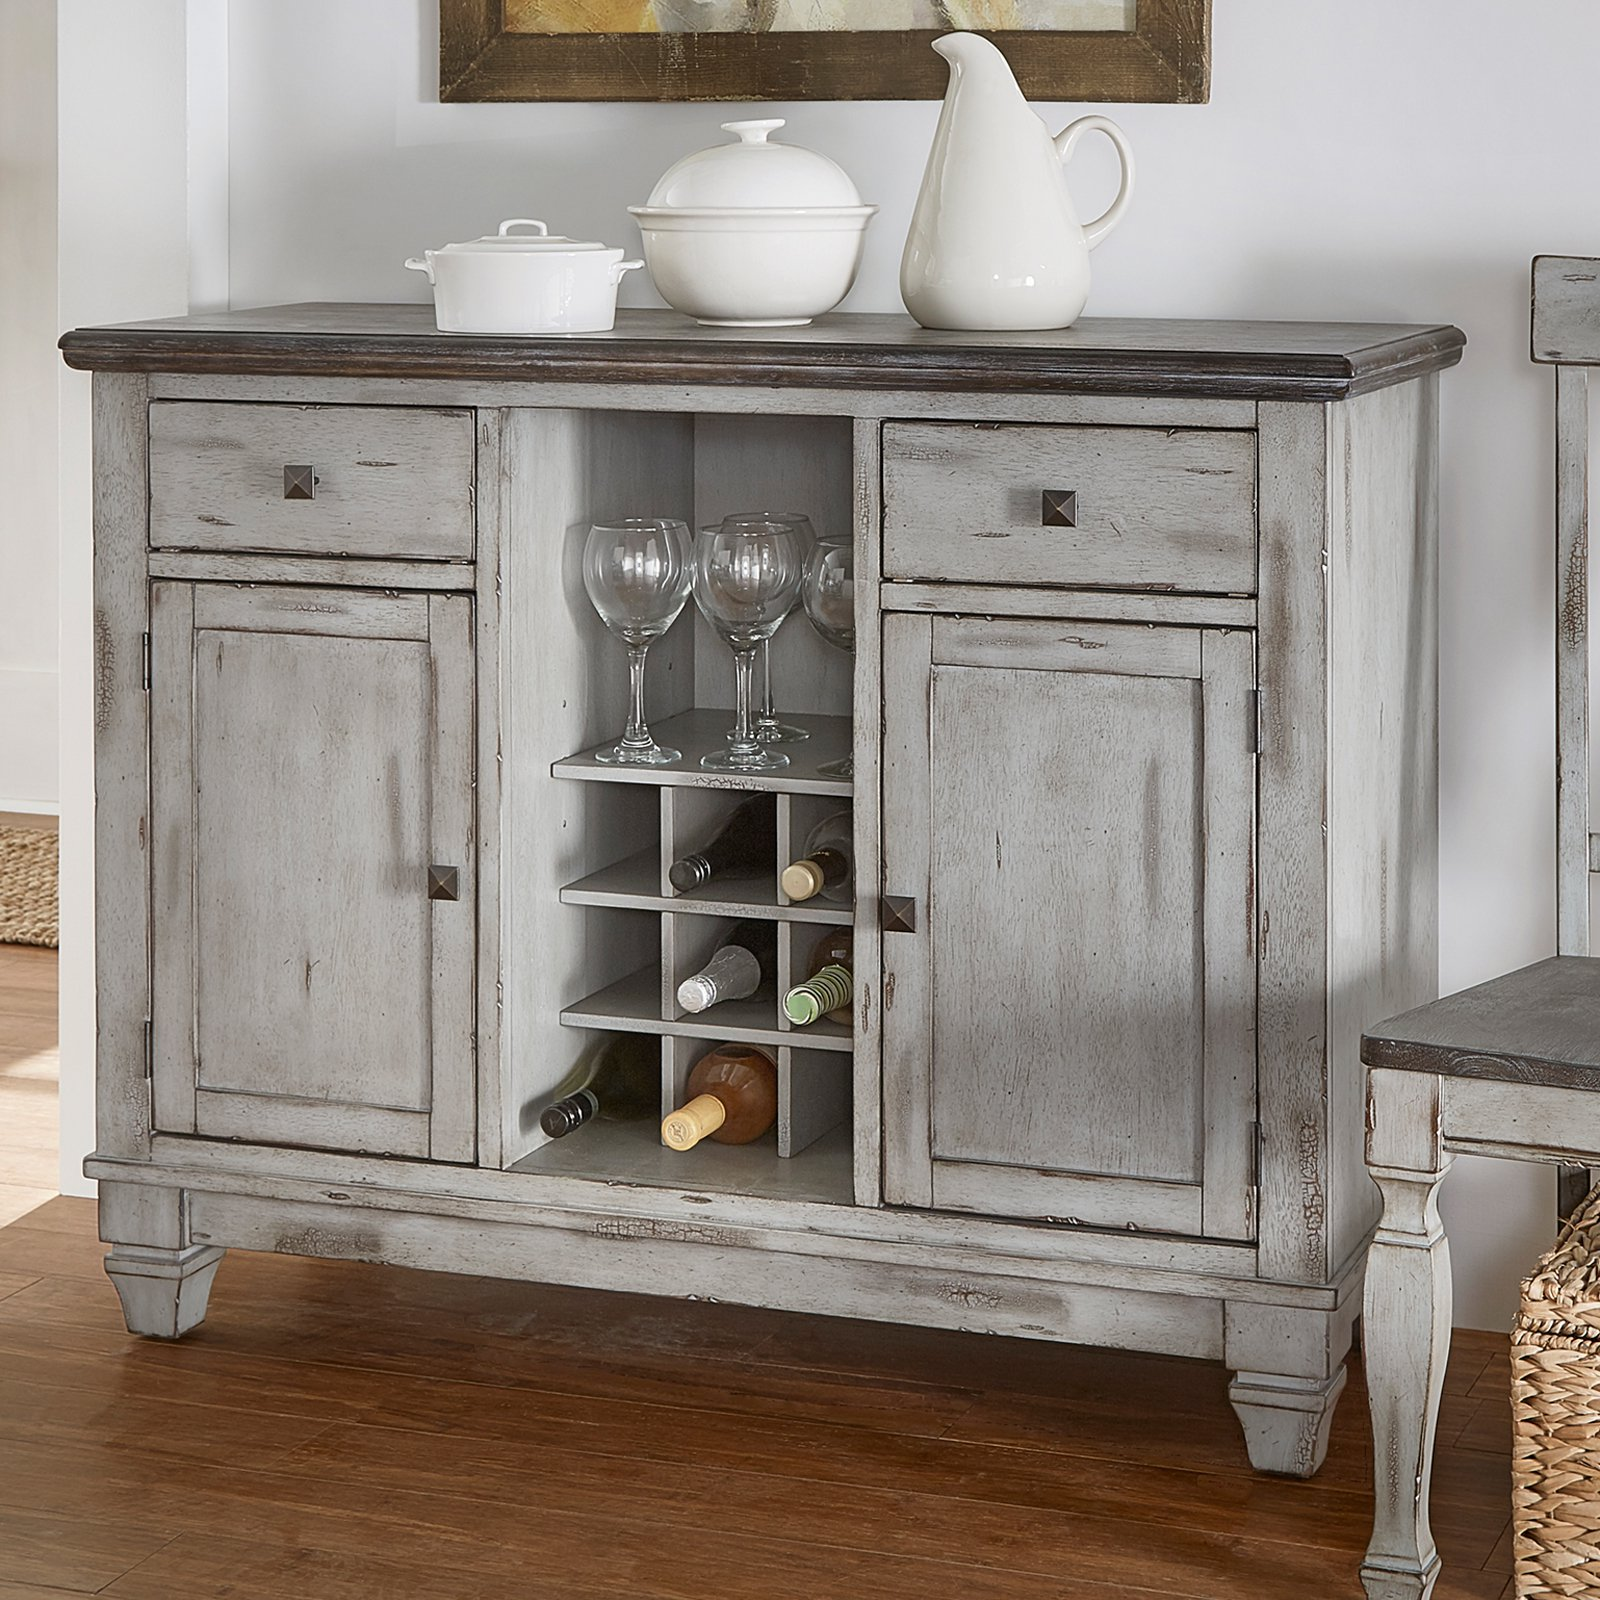 Weston Home Two Tone Server, Coffee and Antique Grey